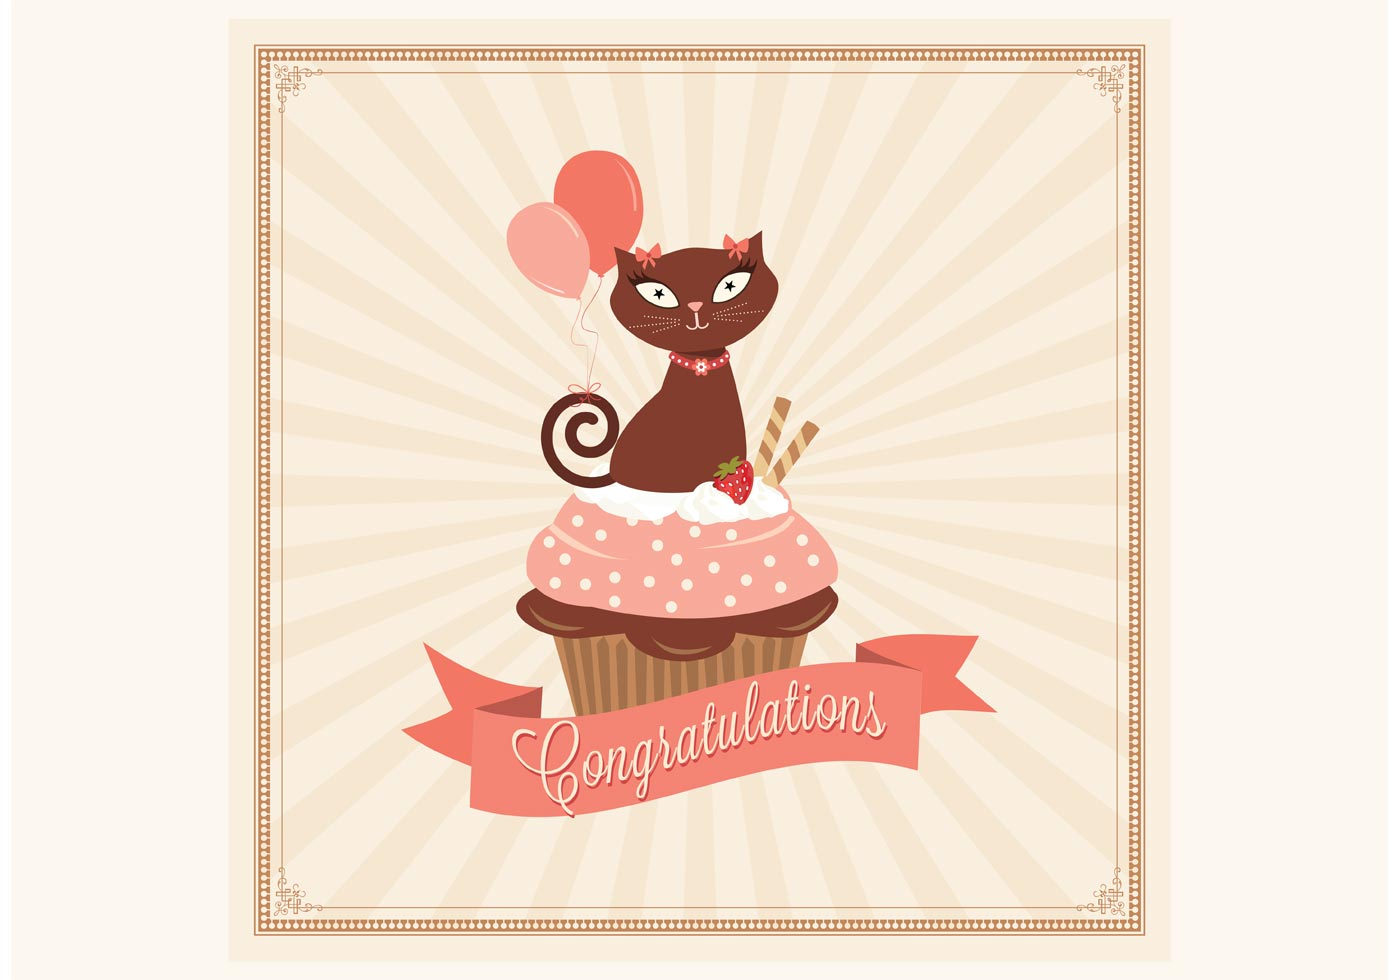 congratulations cupcake card vector